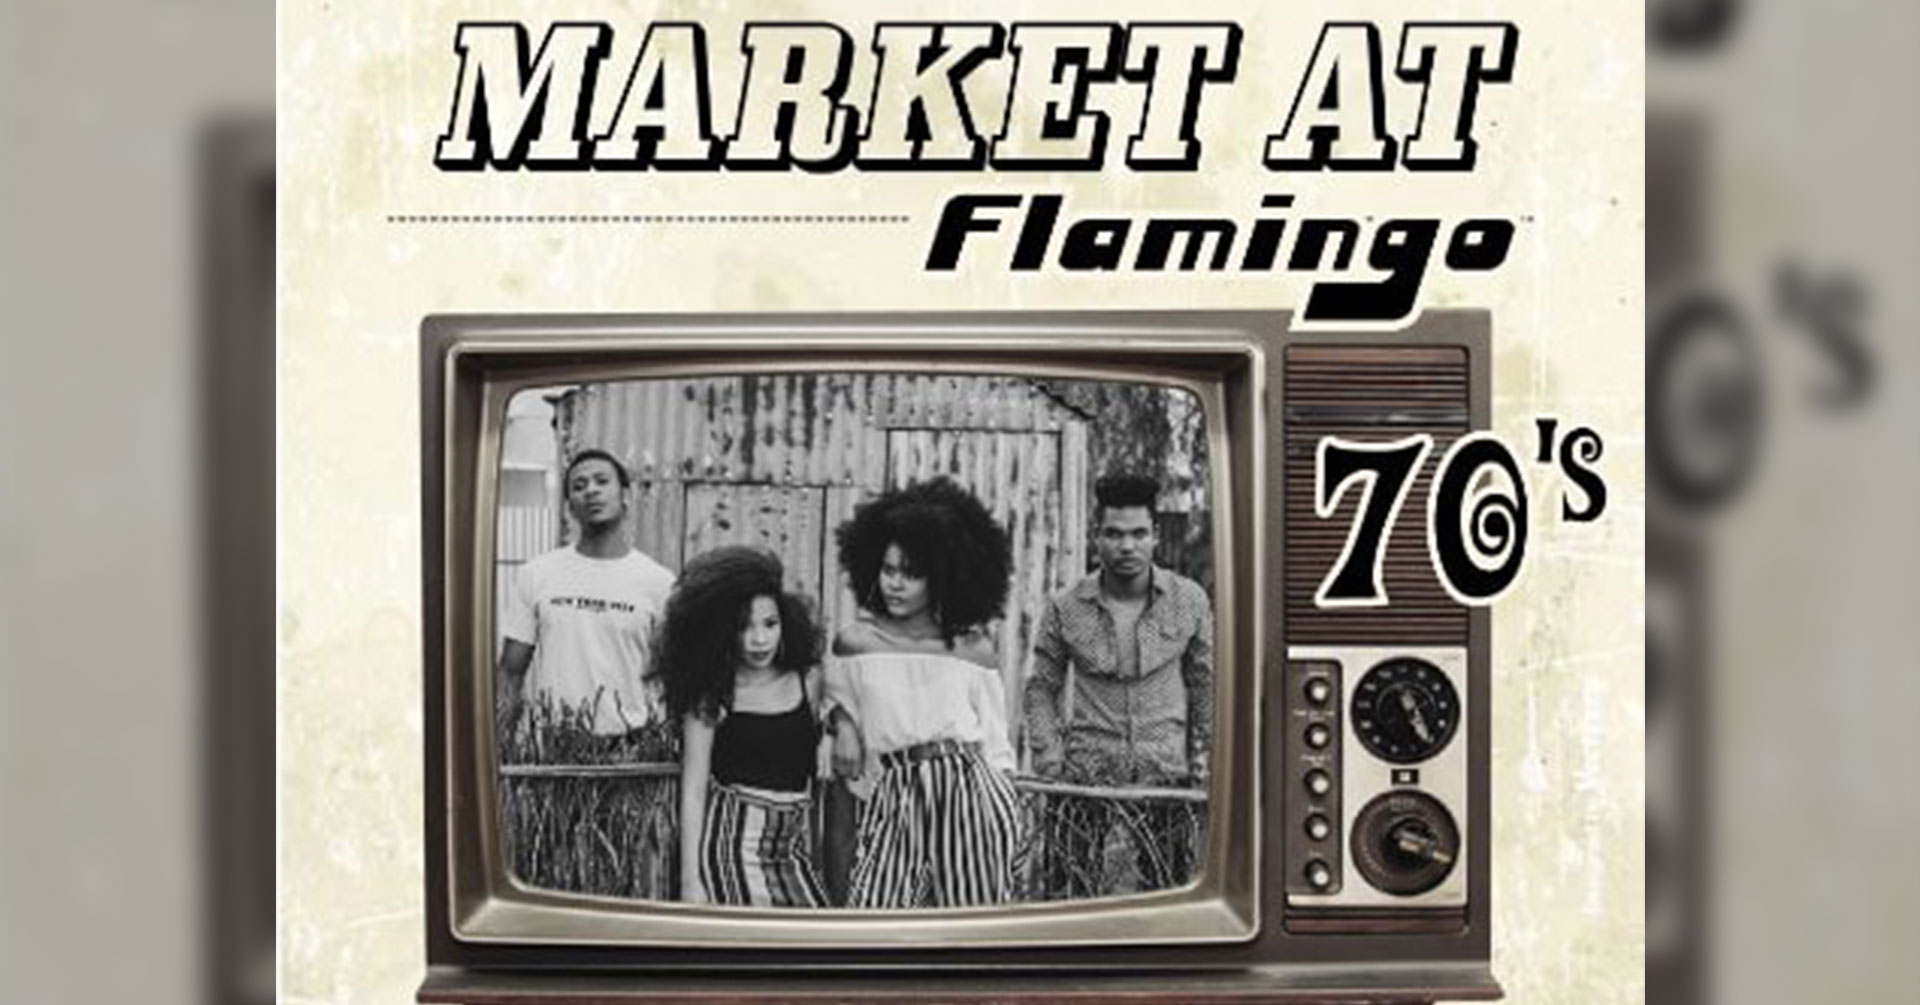 FLAMINGO_CASINO-Market_at_Flamingo-EV-20190420-WEBSITE